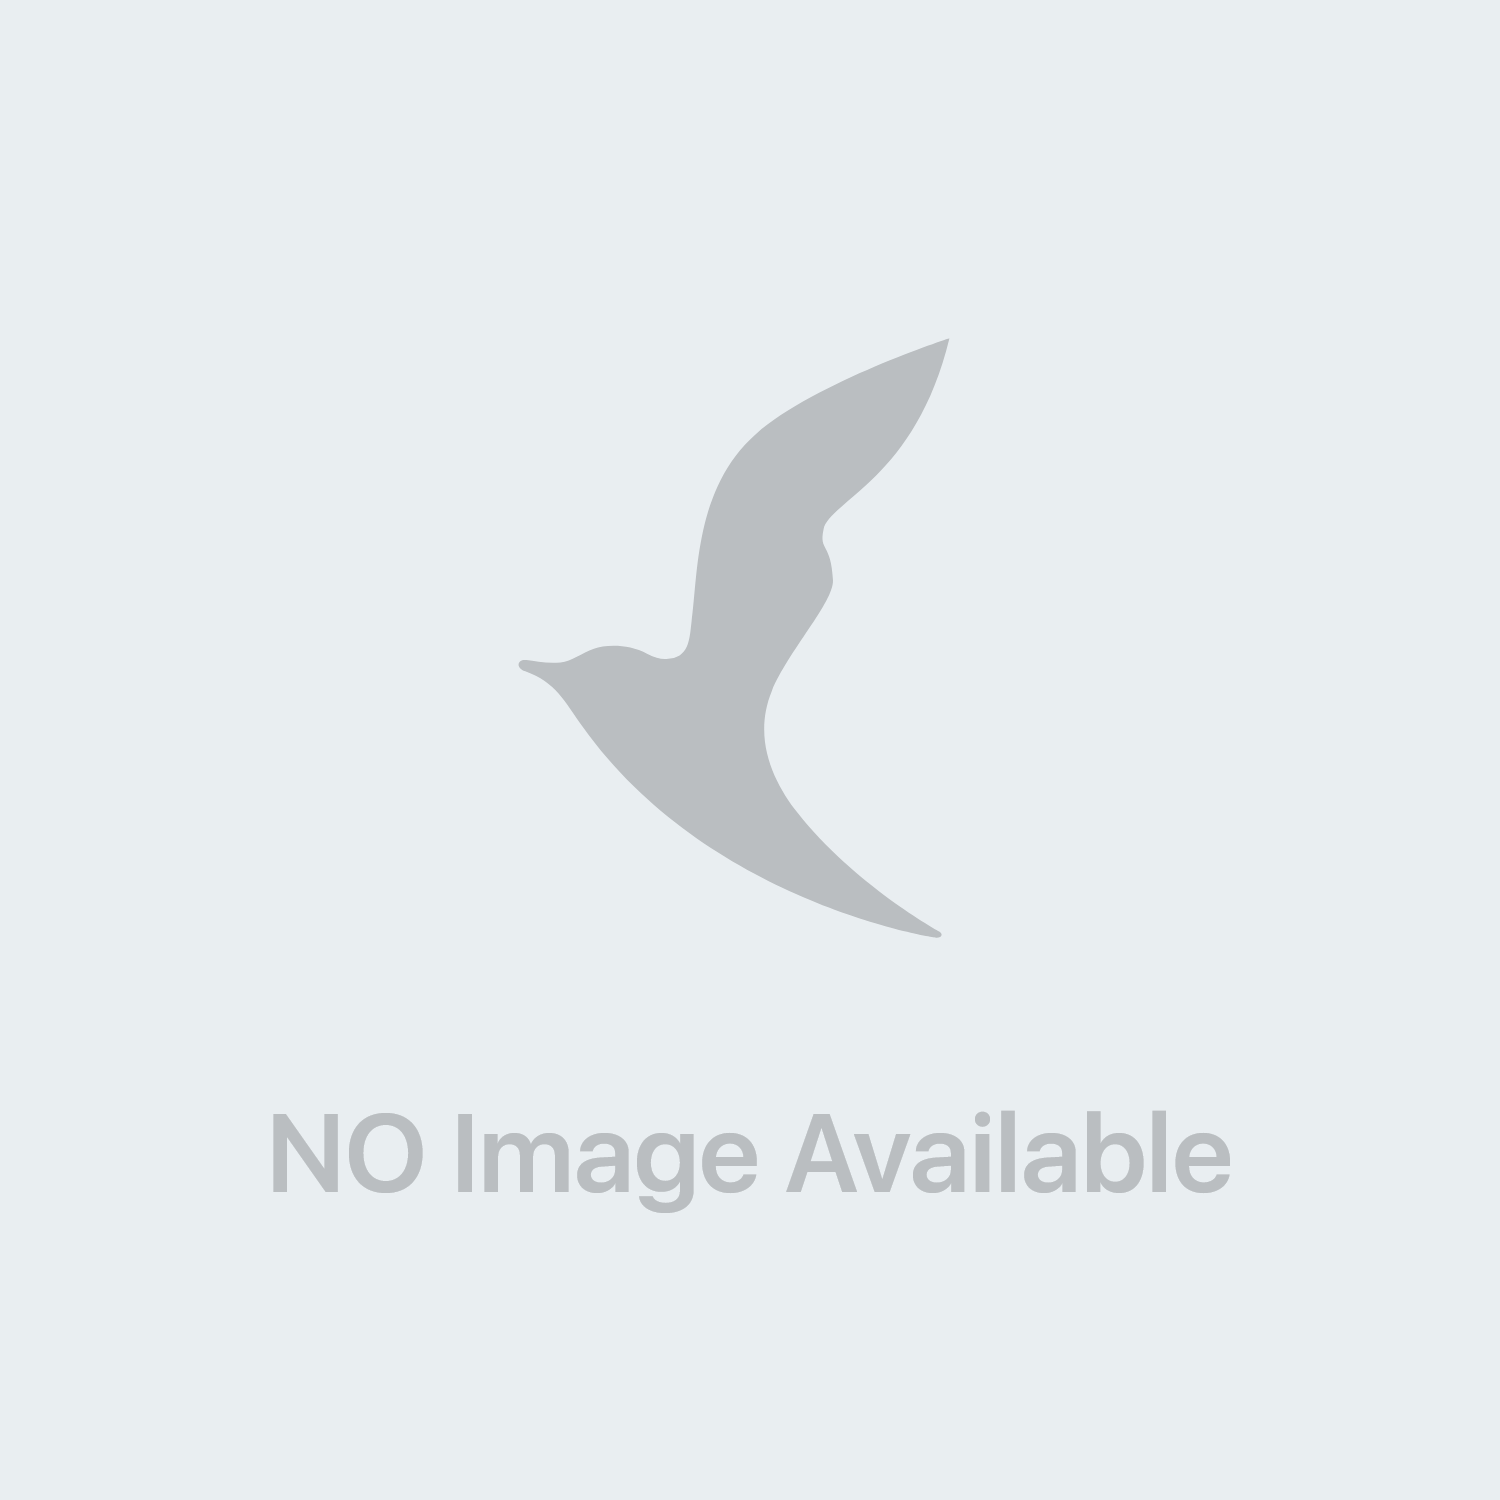 Pic Insupen 32 G 4 Mm Aghi Pungidito 100 Pezzi